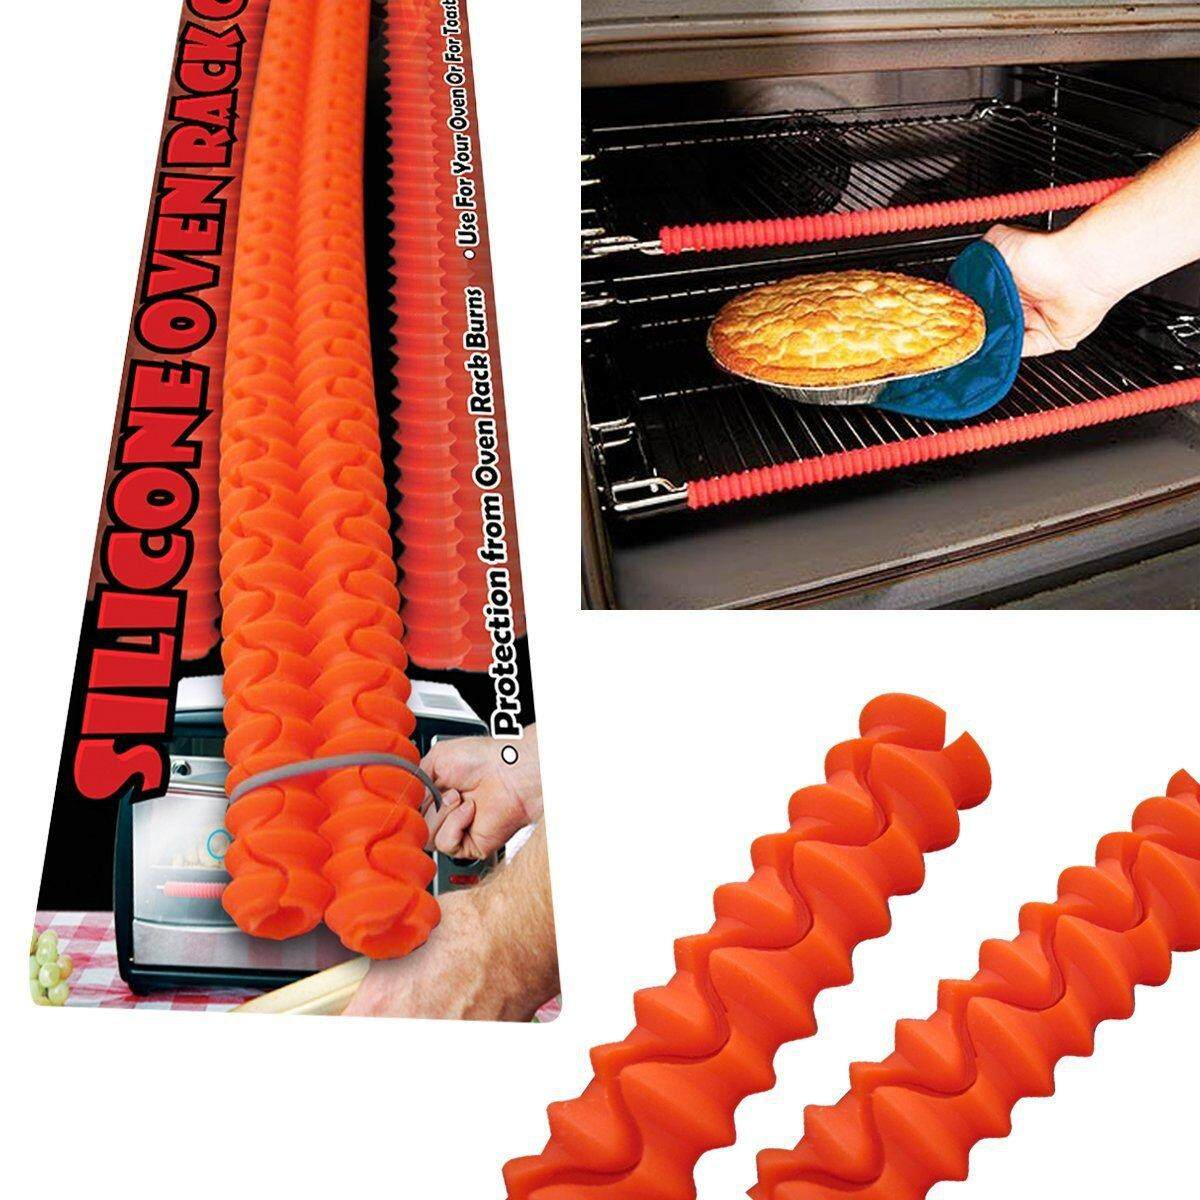 Honana Kc-020 Enipate Silicone Oven Rack Edge Guards Protector Clip Guard Baking & Pastry Tools Heat Resistant Red Avoid Burns By Moonbeam.